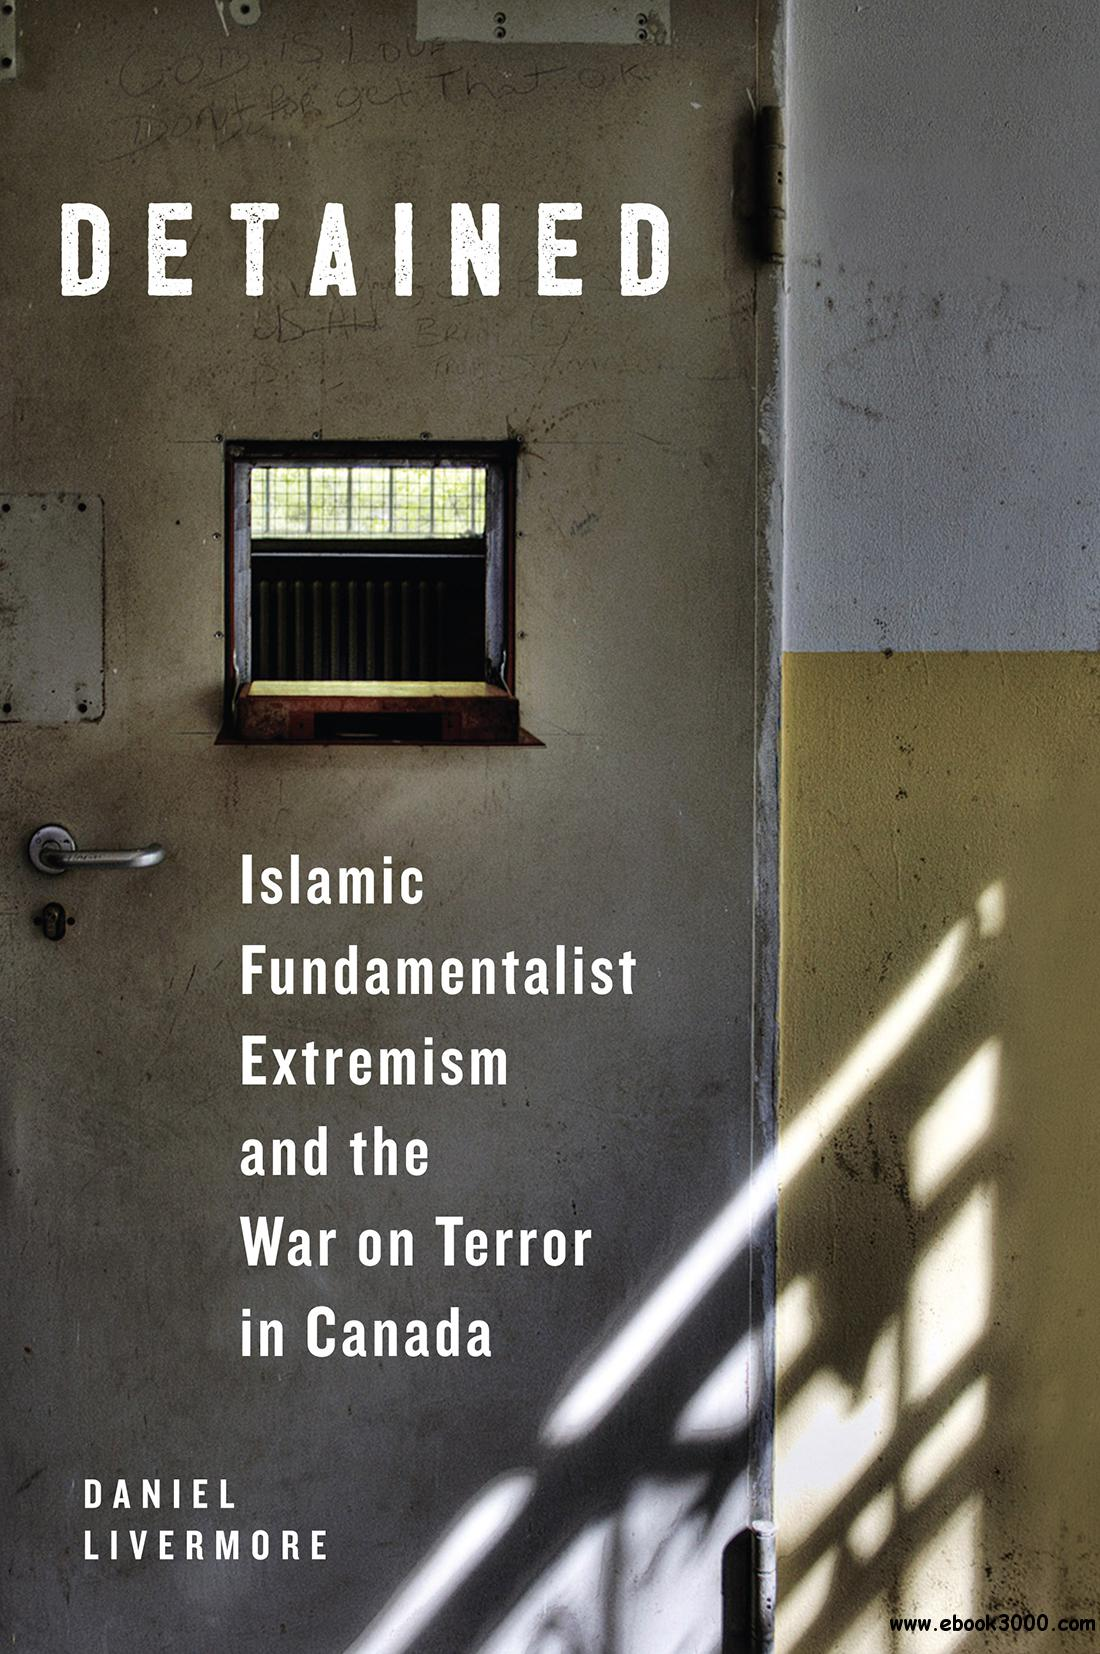 Detained: Islamic Fundamentalist Extremism and the War on Terror in Canada, 3rd Edition